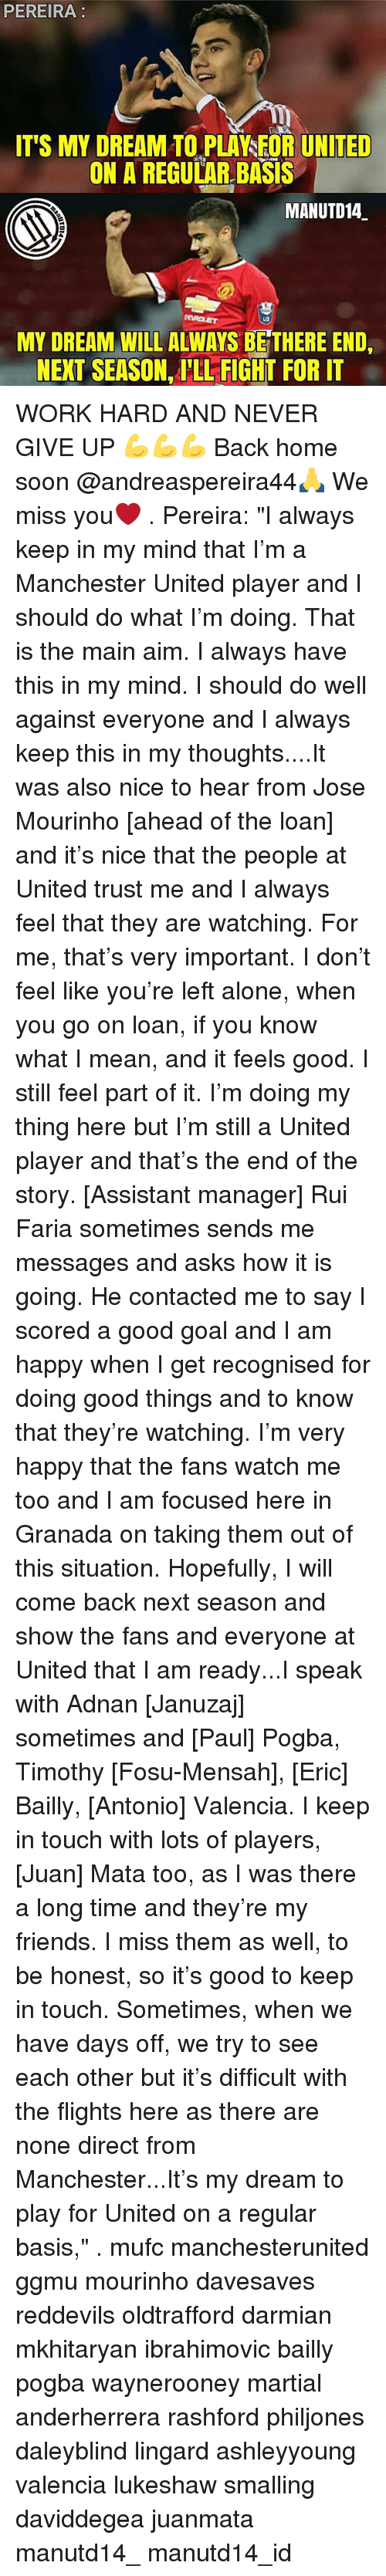 """Keep In Touch: PEREIRA  ITS MY DREAM TO PLAYSEOR UNITED  ON A REGULAR BASIS  MANUTD14  MY DREAM WILLALWAYS BETHERE END,  NEXT SEASON ILL FIGHT FOR IT WORK HARD AND NEVER GIVE UP 💪💪💪 Back home soon @andreaspereira44🙏 We miss you❤ . Pereira: """"I always keep in my mind that I'm a Manchester United player and I should do what I'm doing. That is the main aim. I always have this in my mind. I should do well against everyone and I always keep this in my thoughts....It was also nice to hear from Jose Mourinho [ahead of the loan] and it's nice that the people at United trust me and I always feel that they are watching. For me, that's very important. I don't feel like you're left alone, when you go on loan, if you know what I mean, and it feels good. I still feel part of it. I'm doing my thing here but I'm still a United player and that's the end of the story. [Assistant manager] Rui Faria sometimes sends me messages and asks how it is going. He contacted me to say I scored a good goal and I am happy when I get recognised for doing good things and to know that they're watching. I'm very happy that the fans watch me too and I am focused here in Granada on taking them out of this situation. Hopefully, I will come back next season and show the fans and everyone at United that I am ready...I speak with Adnan [Januzaj] sometimes and [Paul] Pogba, Timothy [Fosu-Mensah], [Eric] Bailly, [Antonio] Valencia. I keep in touch with lots of players, [Juan] Mata too, as I was there a long time and they're my friends. I miss them as well, to be honest, so it's good to keep in touch. Sometimes, when we have days off, we try to see each other but it's difficult with the flights here as there are none direct from Manchester...It's my dream to play for United on a regular basis,"""" . mufc manchesterunited ggmu mourinho davesaves reddevils oldtrafford darmian mkhitaryan ibrahimovic bailly pogba waynerooney martial anderherrera rashford philjones daleyblind lingard ashleyyoung valencia lukeshaw small"""